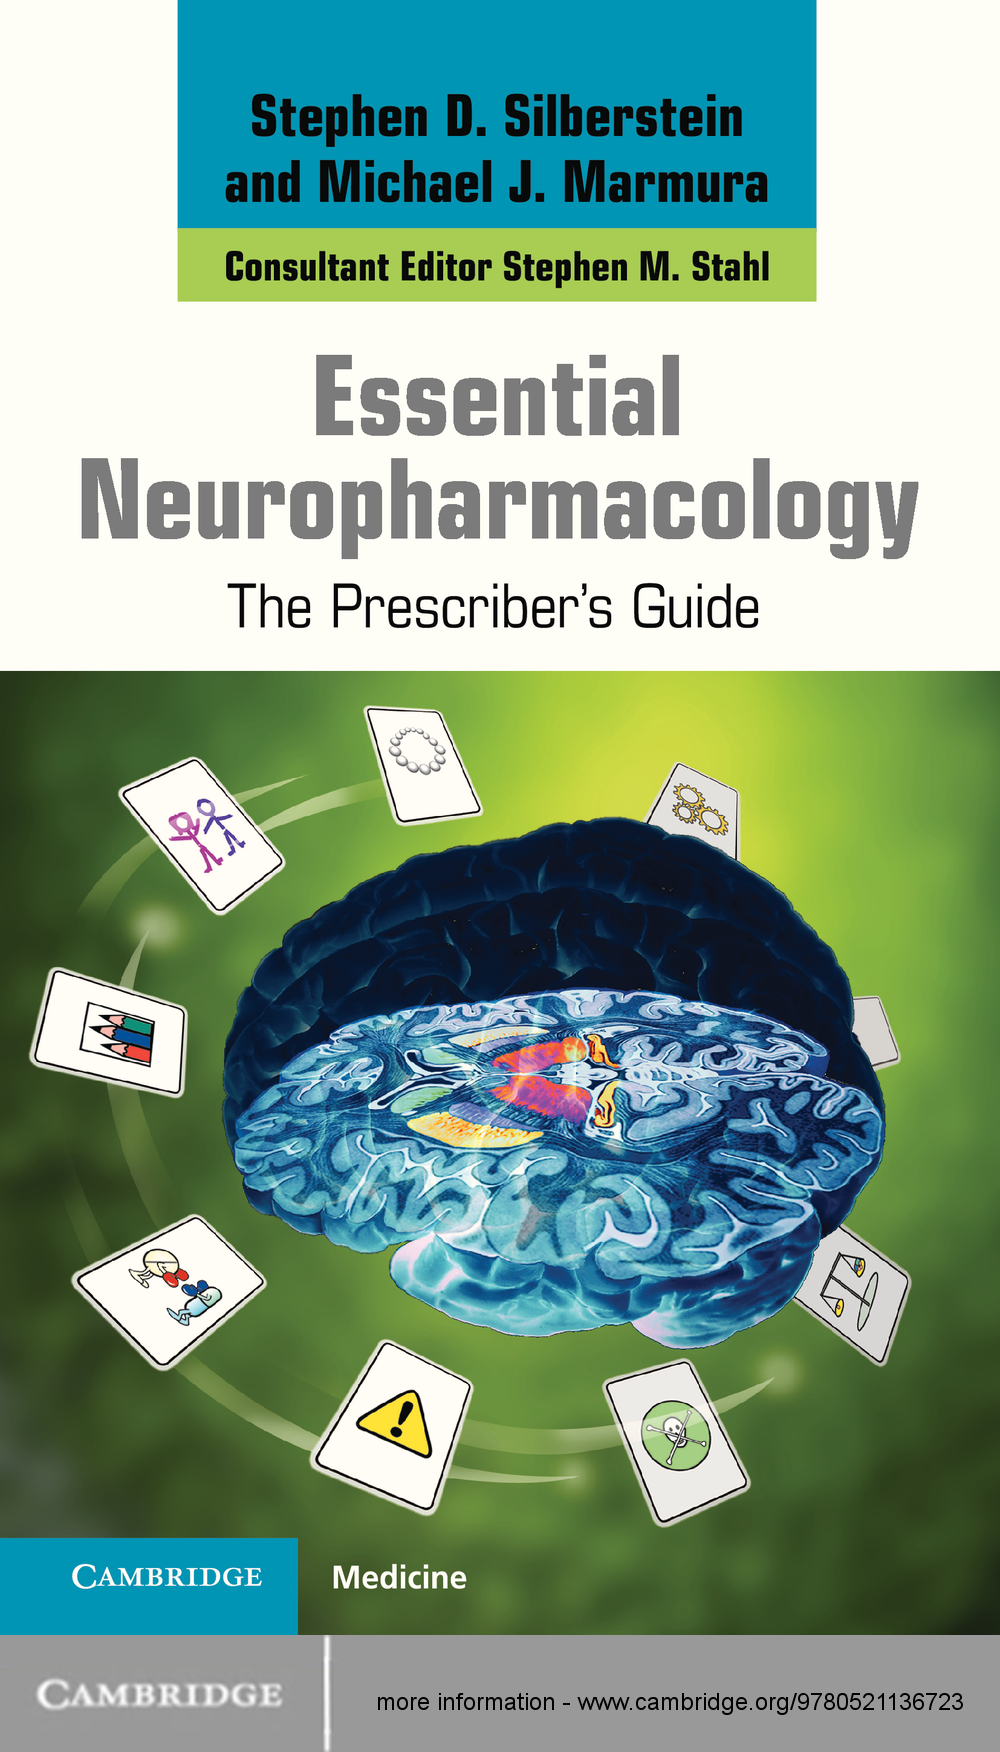 Essential Neuropharmacology The Prescriber's Guide